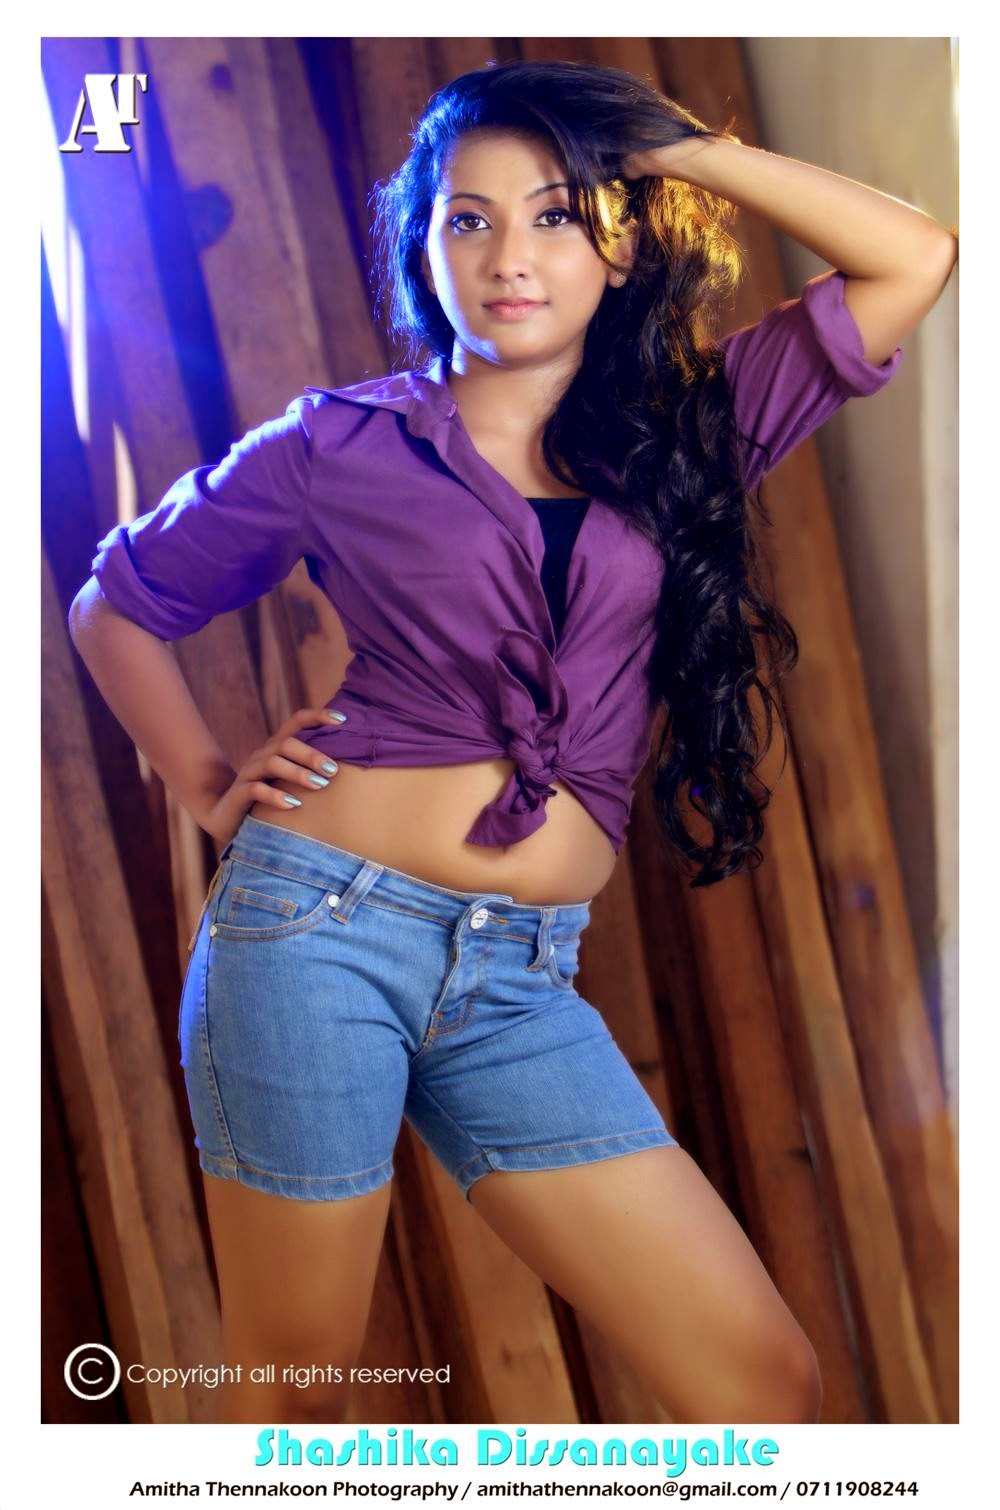 Shashika Dissanayake denim shorts